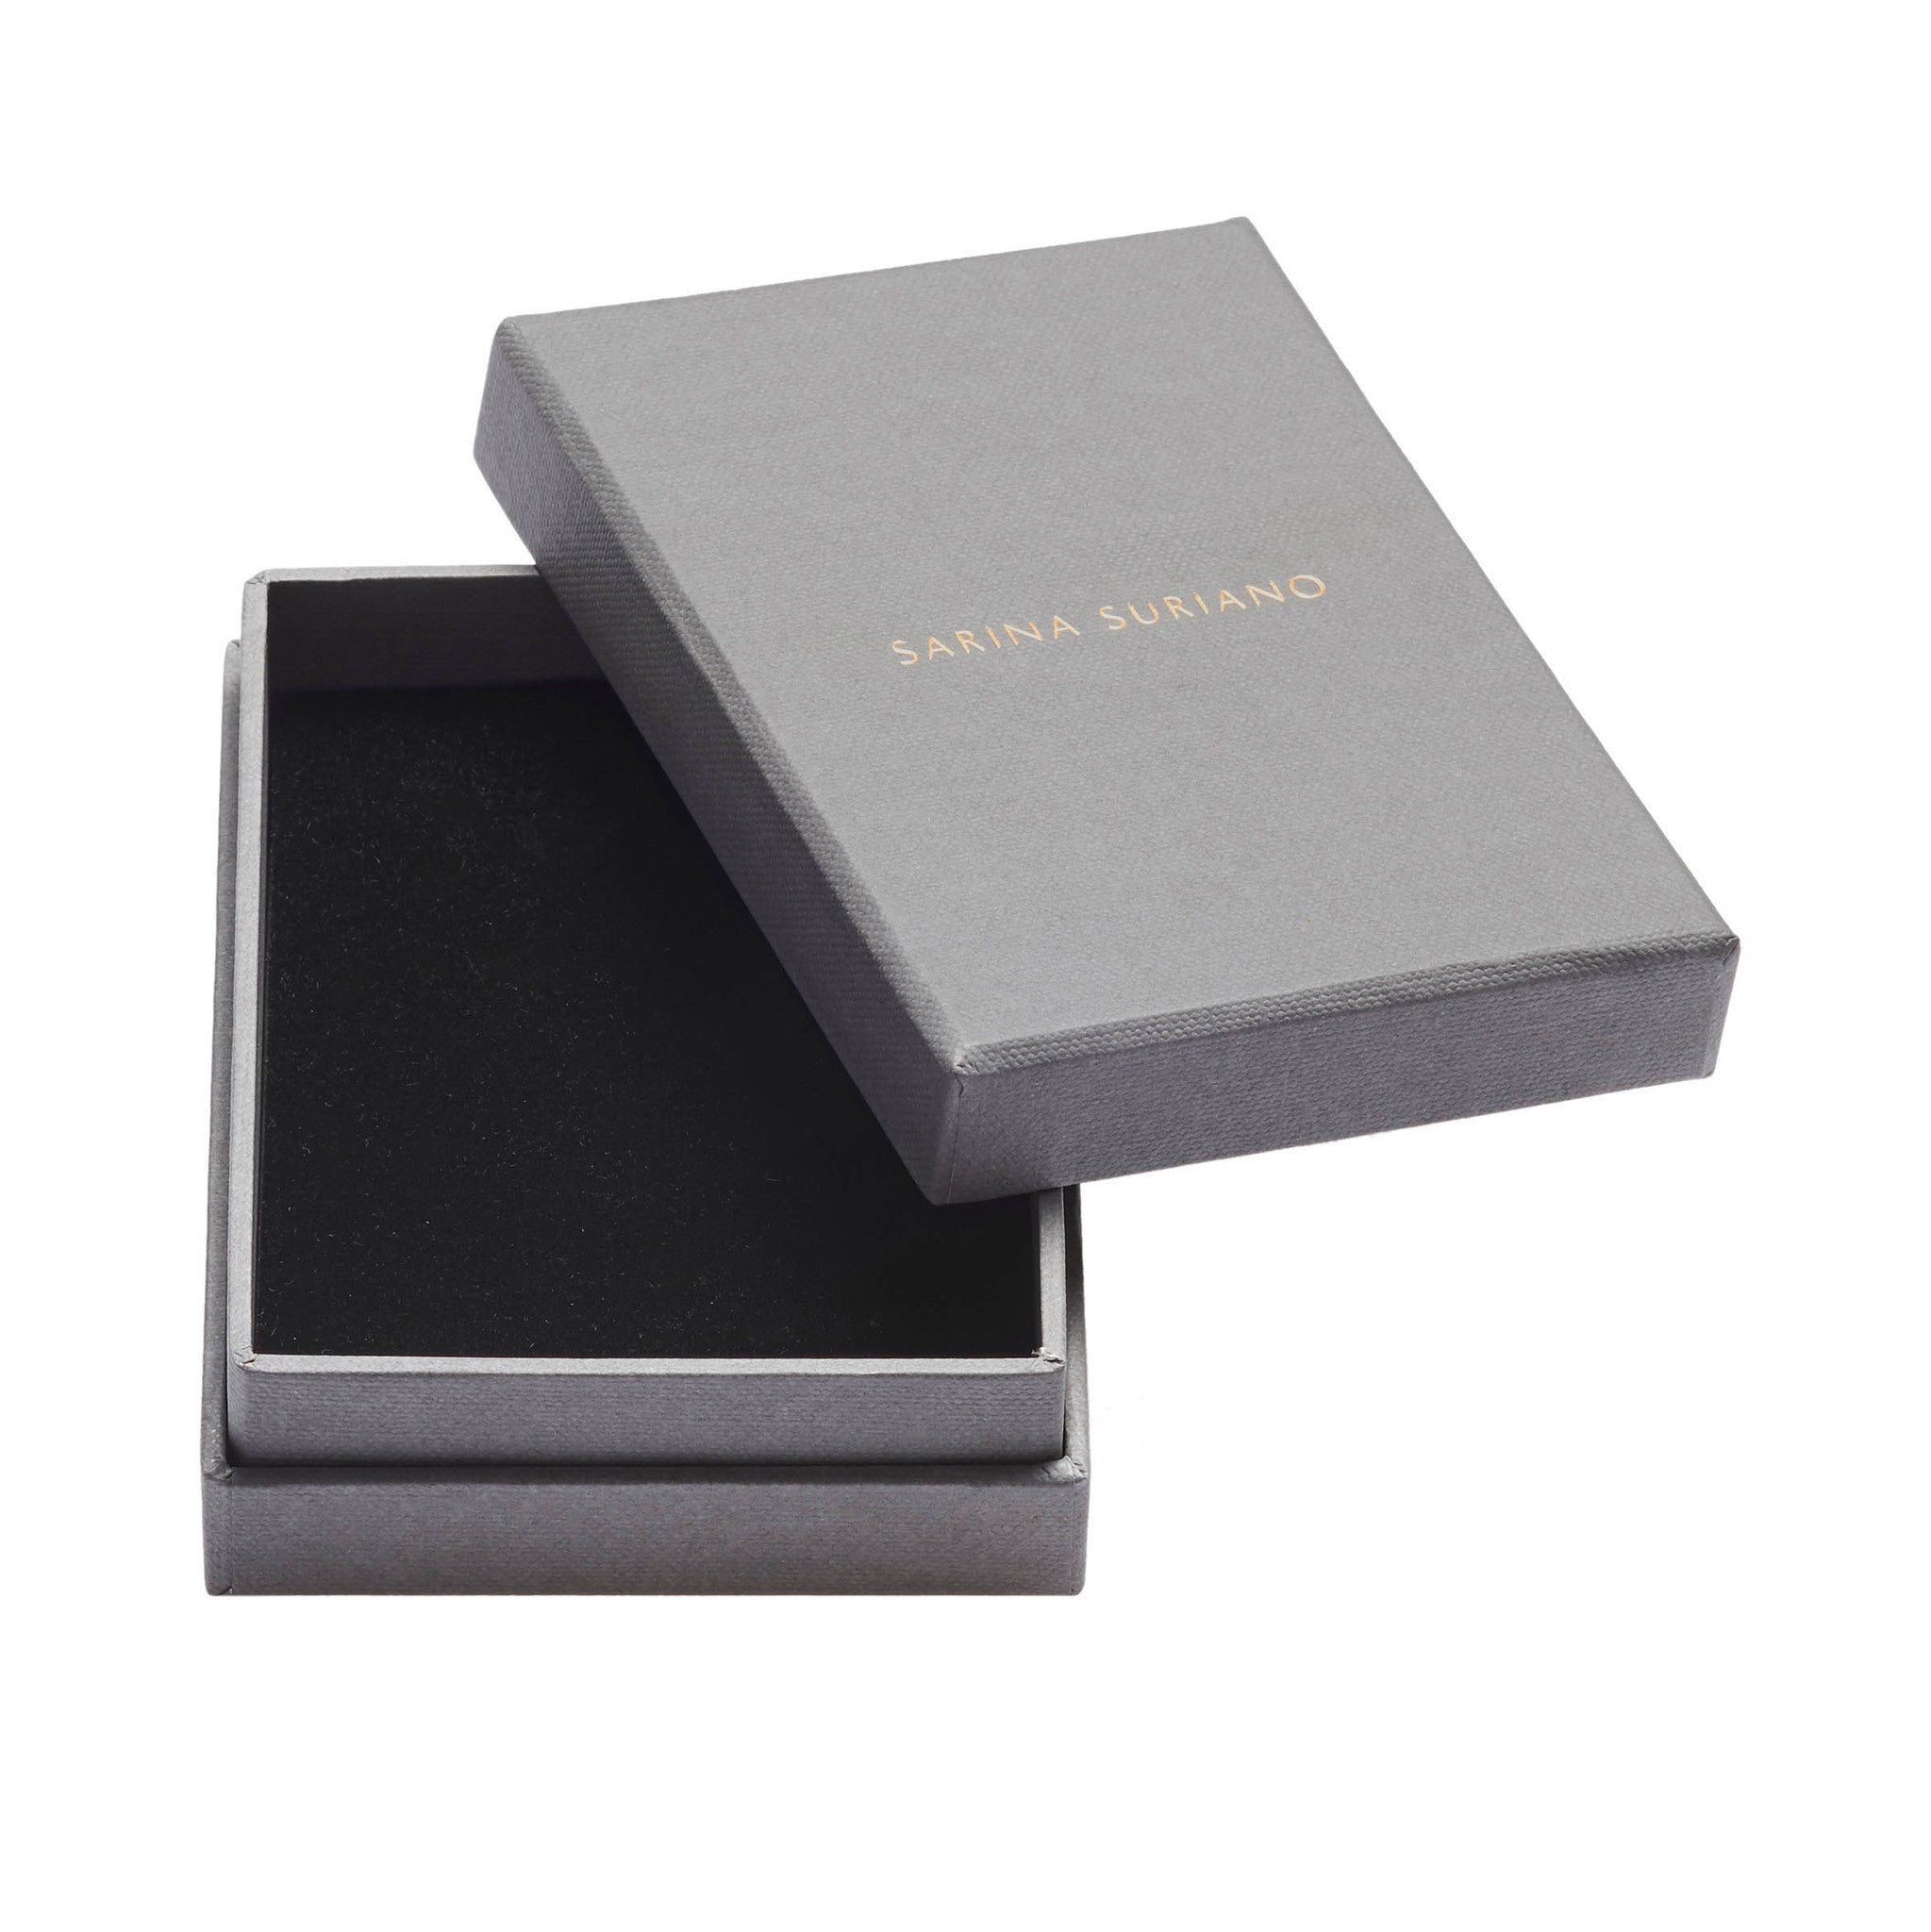 All jewellery comes beautifully packaged in a signature Sarina Suriano handmade jewellery box